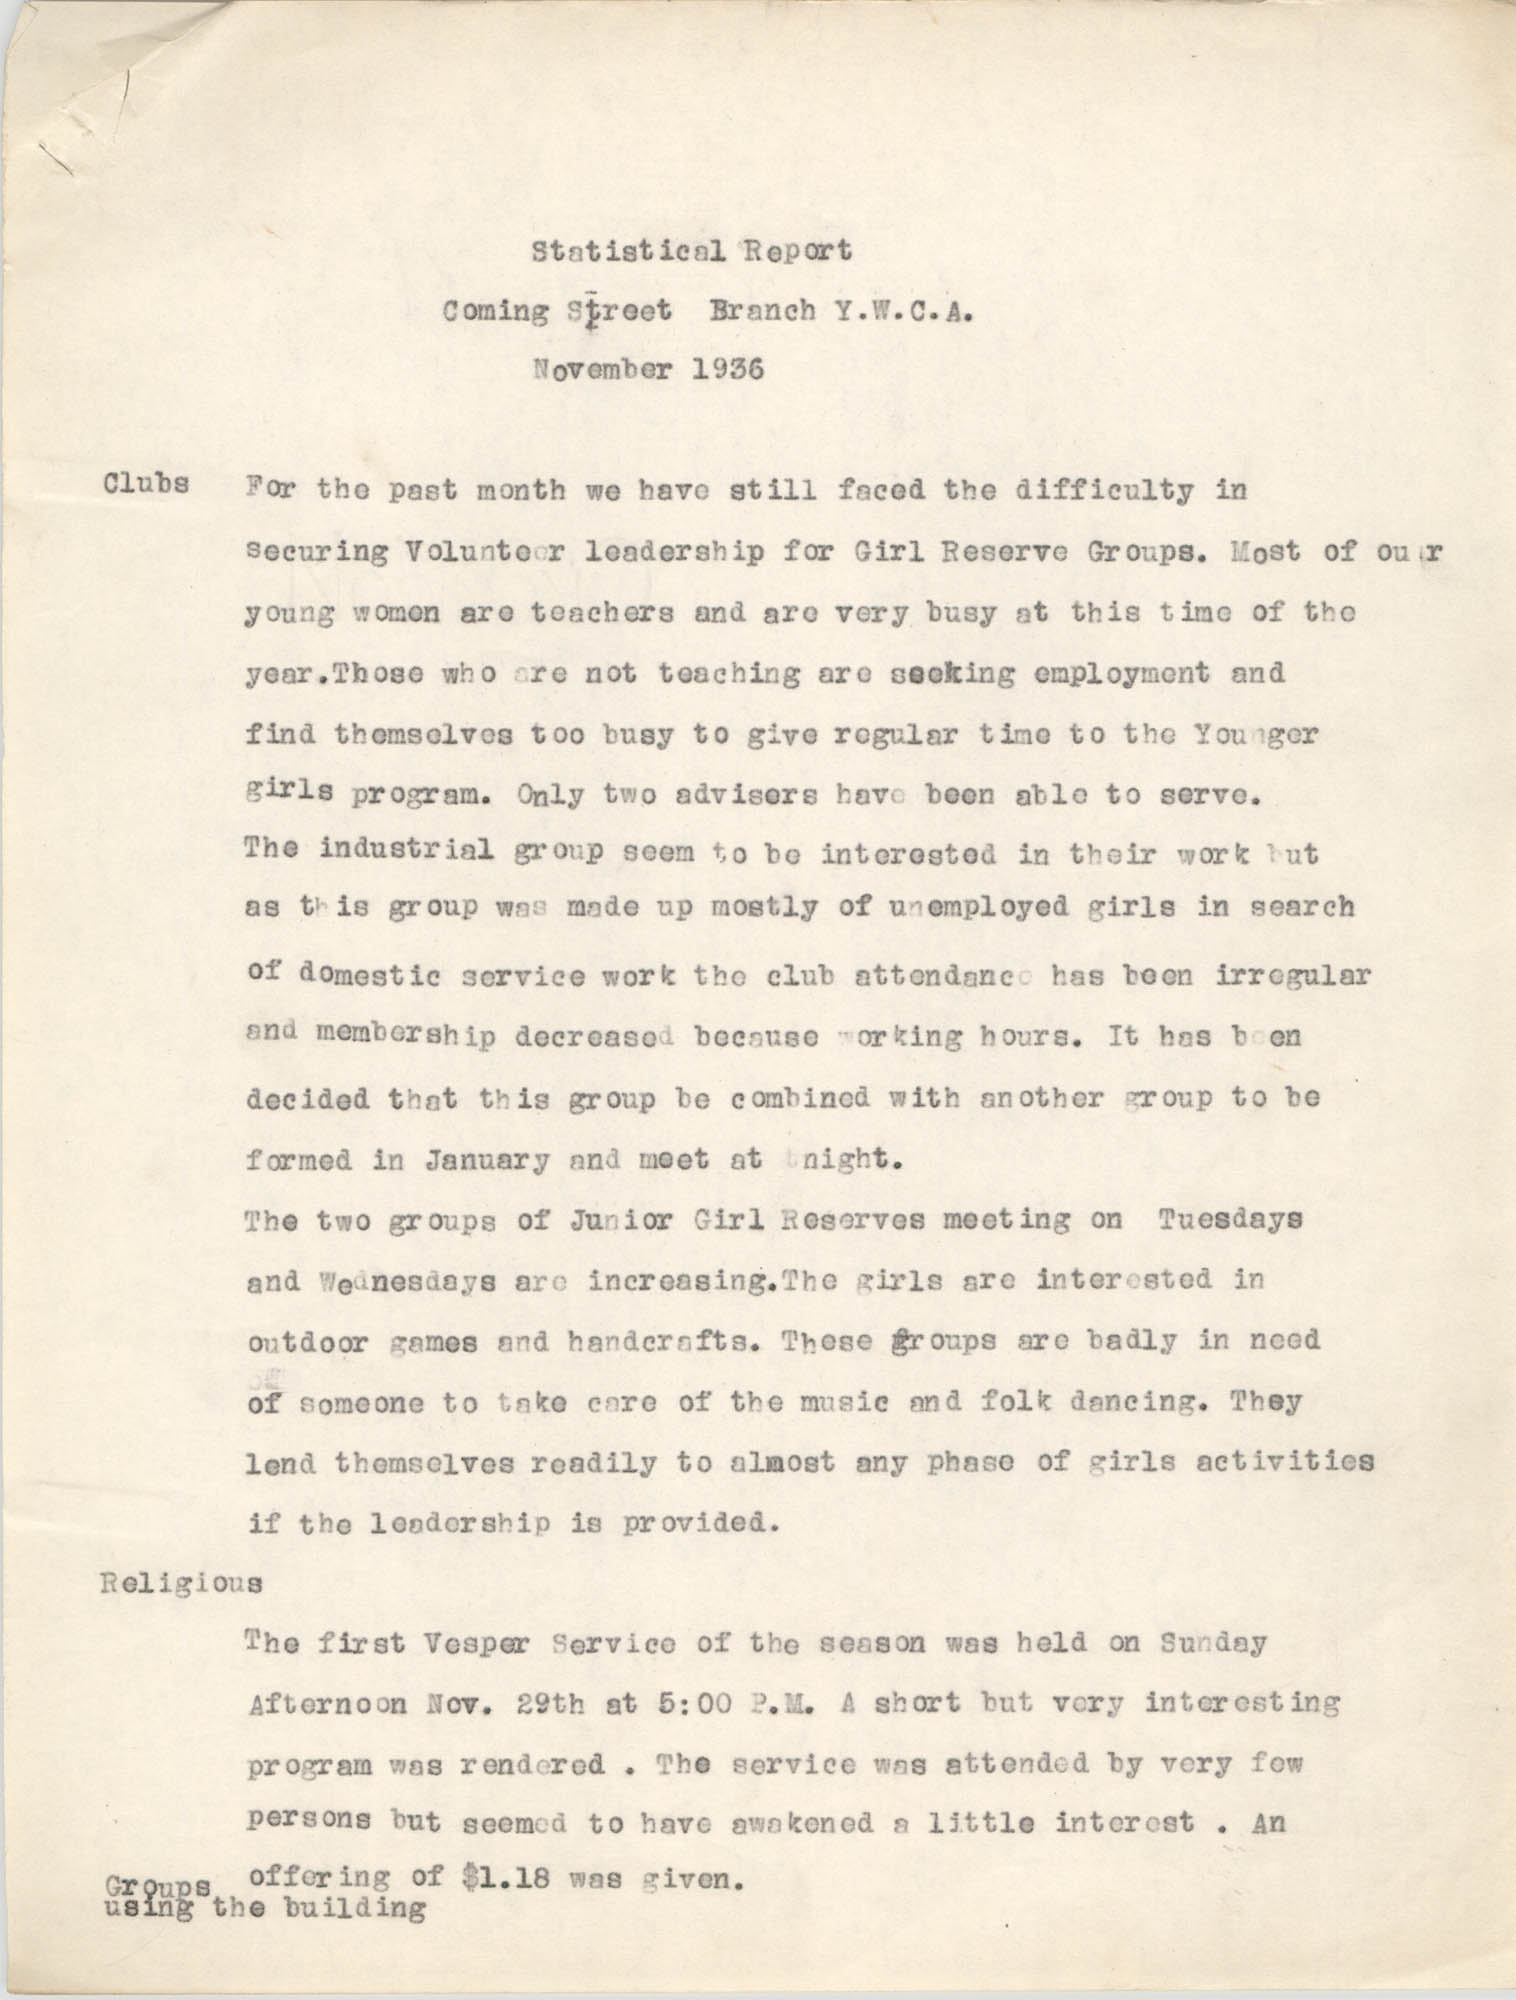 Monthly Report for the Coming Street Y.W.C.A., November 1936